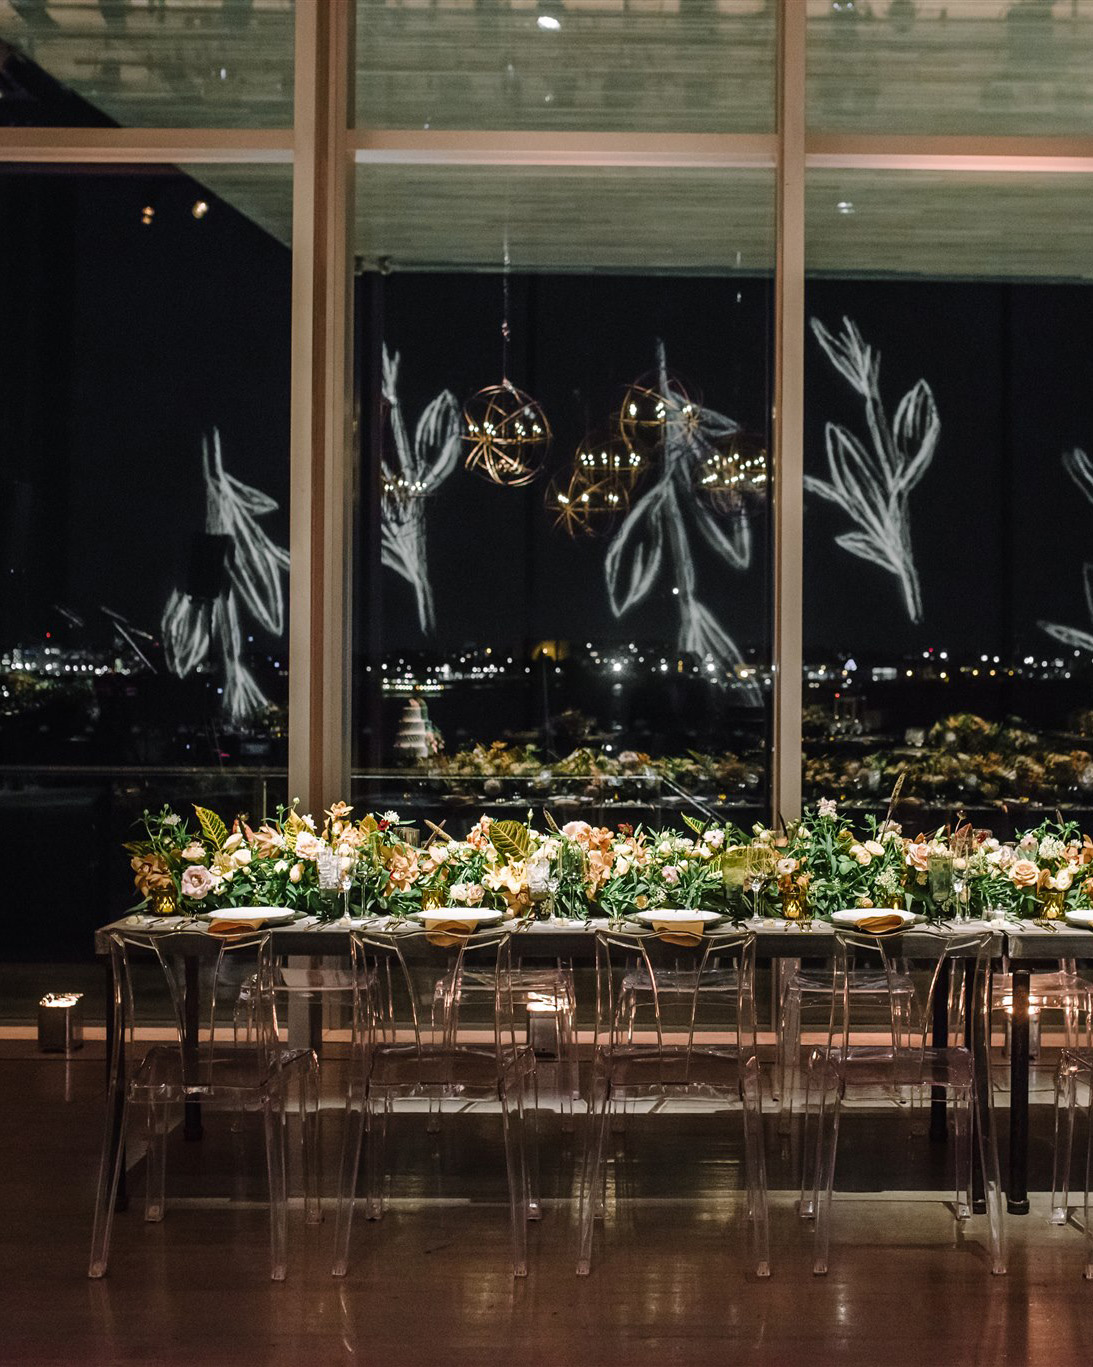 reception table with outdoor night view table-length floral centerpiece